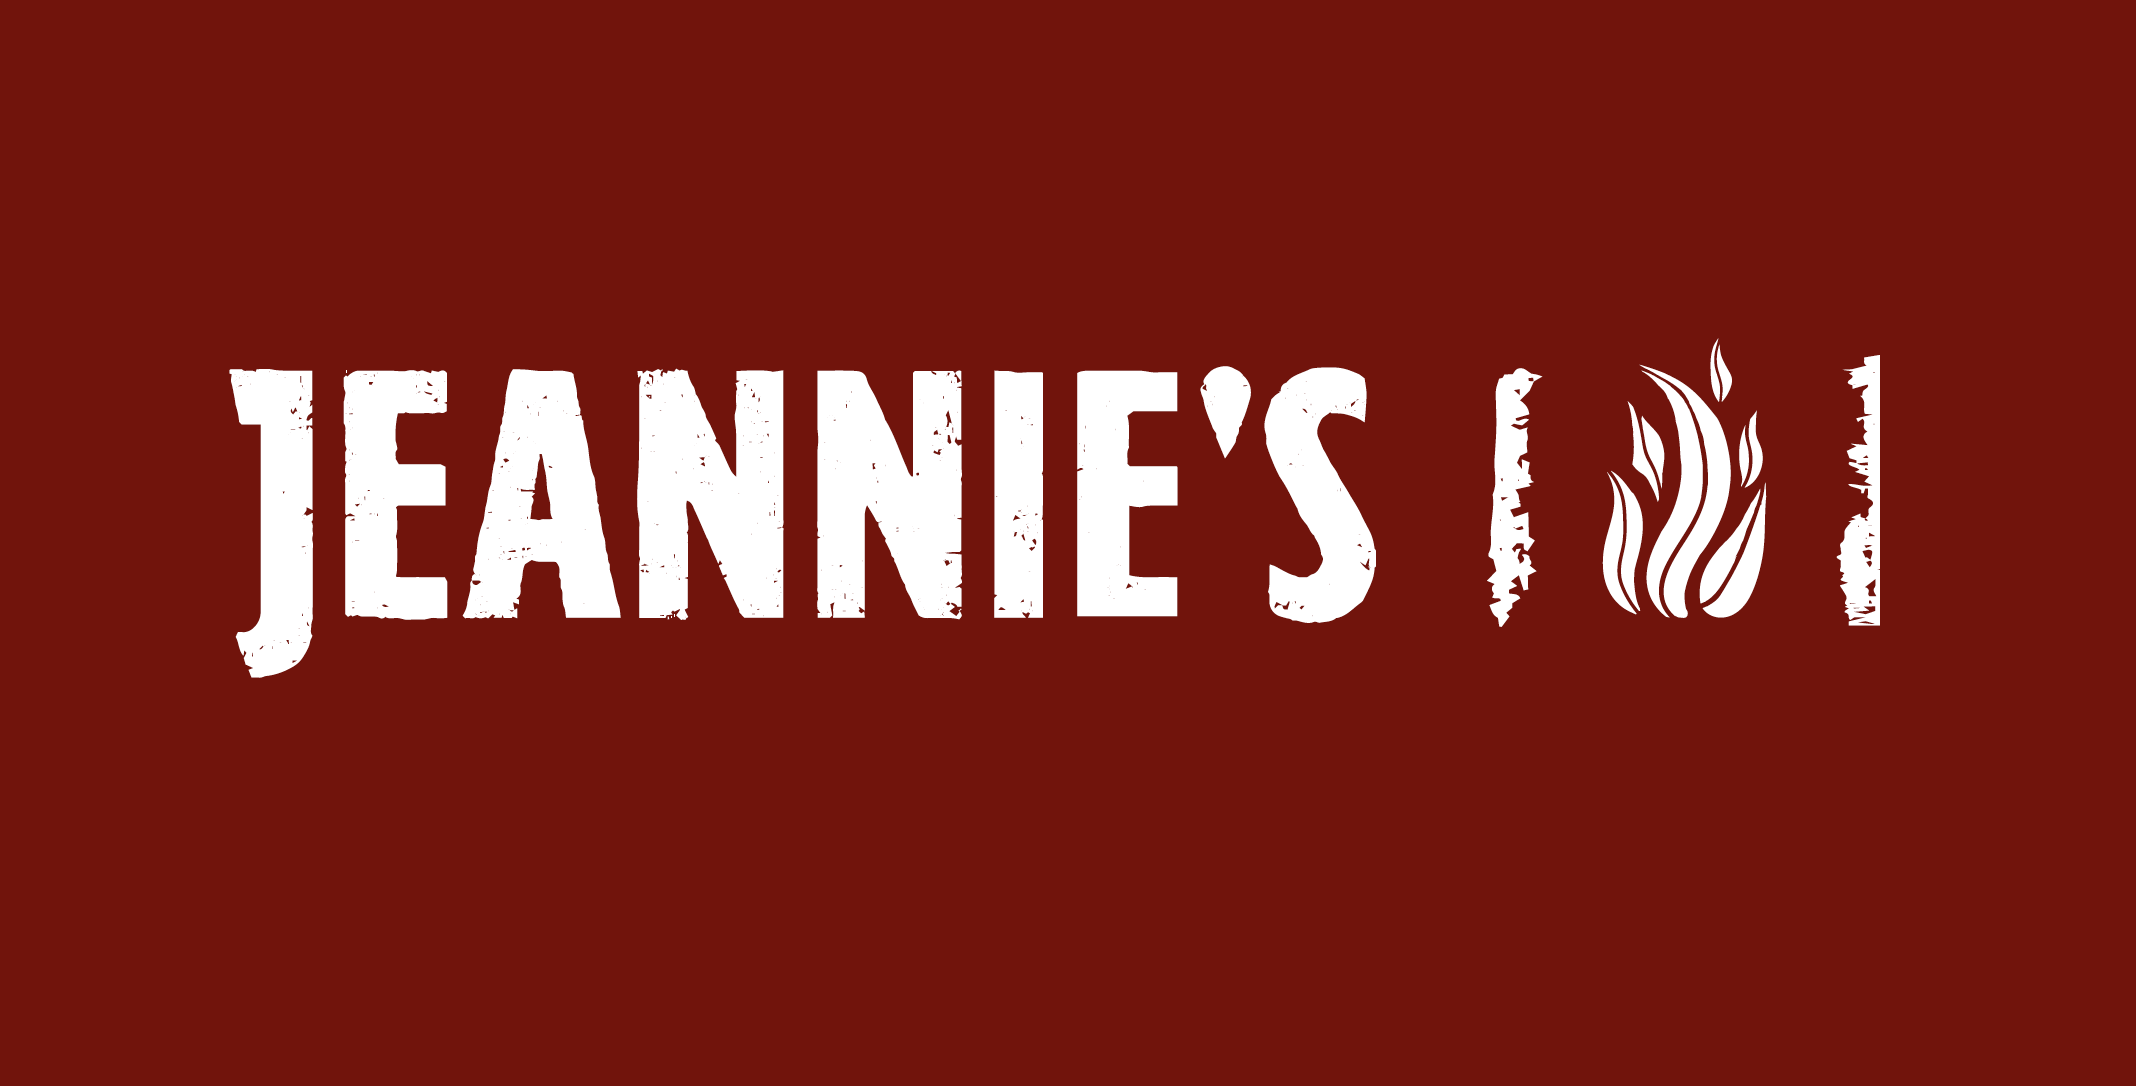 image of Jeannie's logo